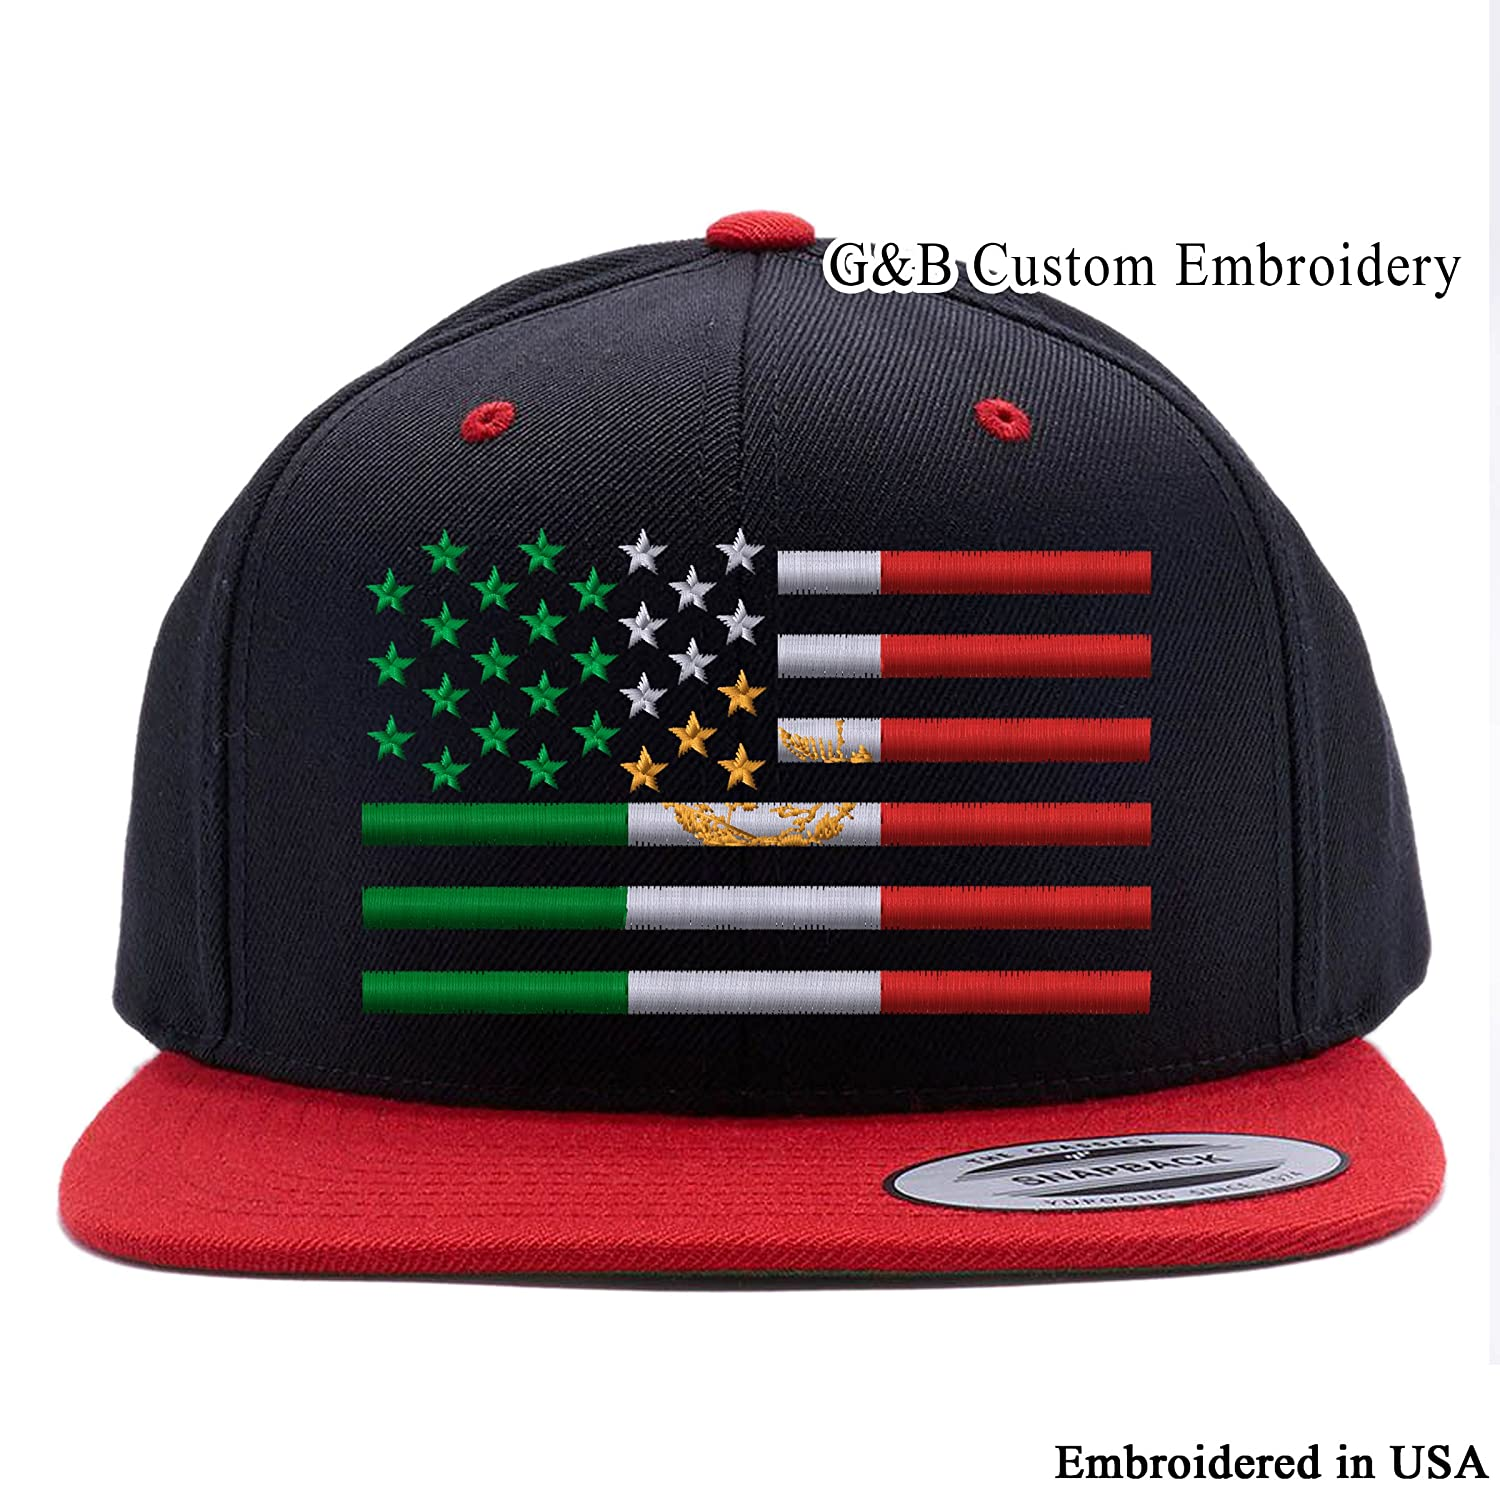 42fa19db47f30e Amazon.com: G&B Custom Embroidery USA Mexico Flag Combination Snapback Cap  Hat Embroidered (Black): Clothing